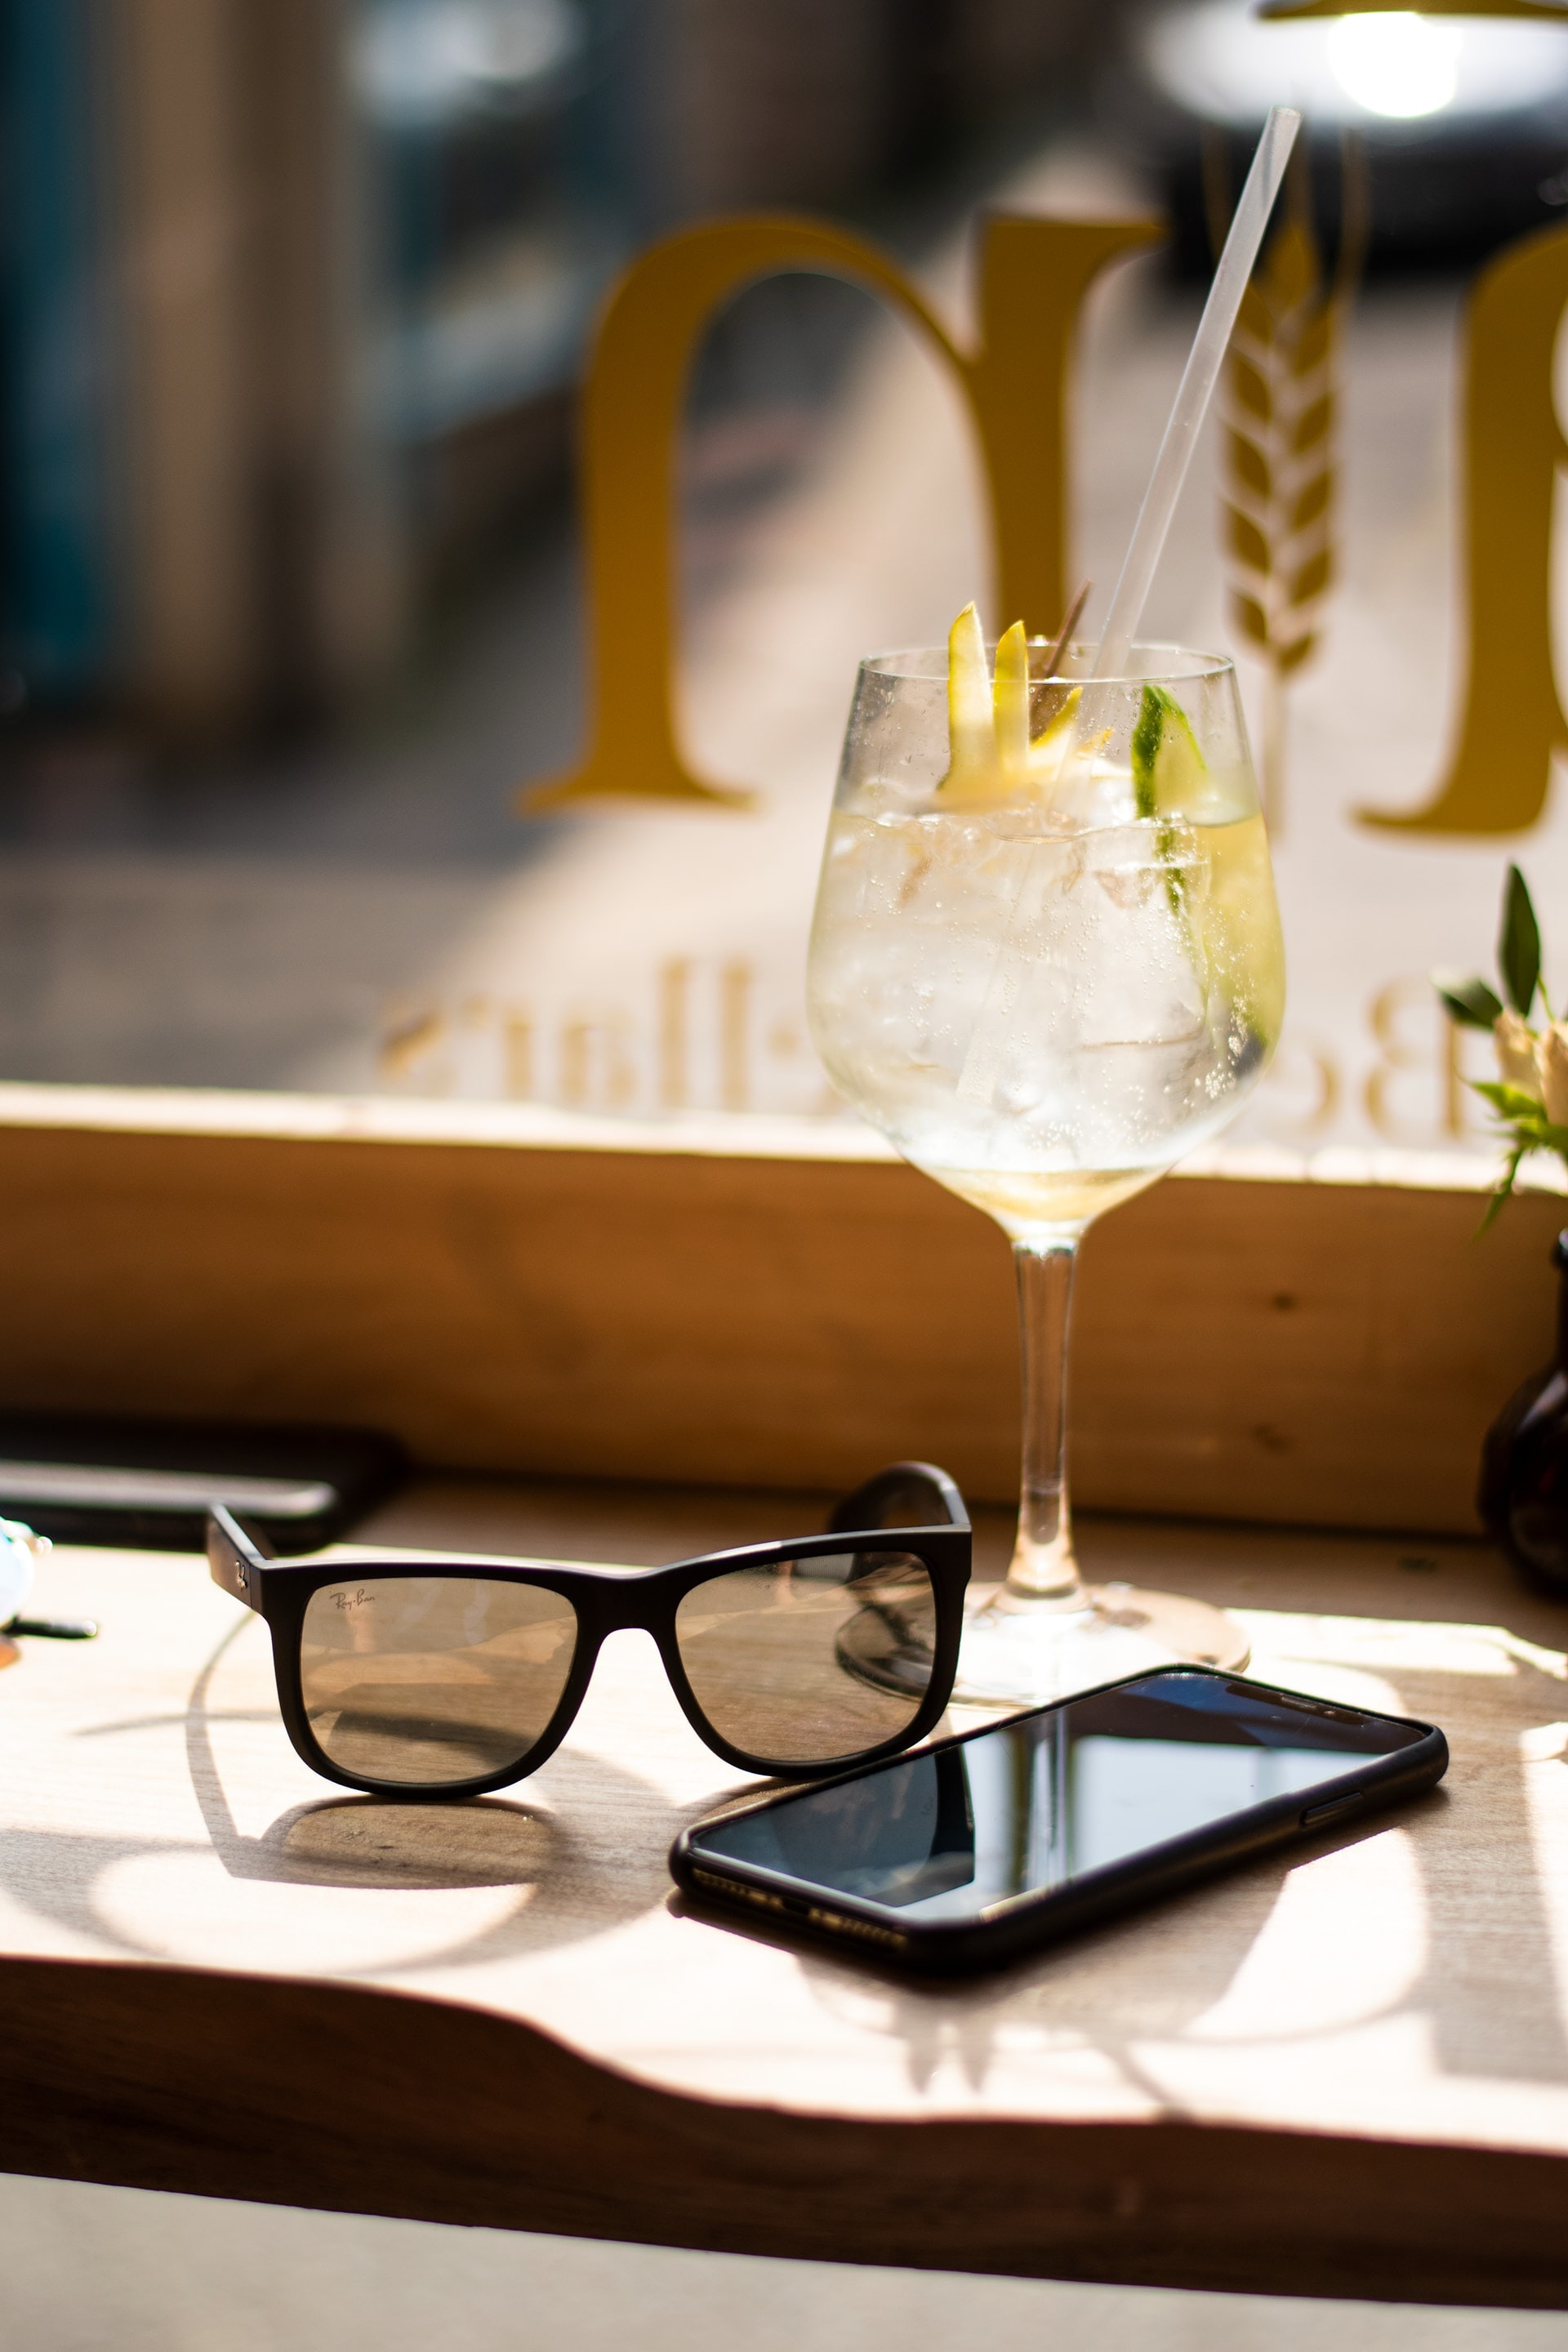 smartphone, wayfarer sunglasses, and wine glass on tray